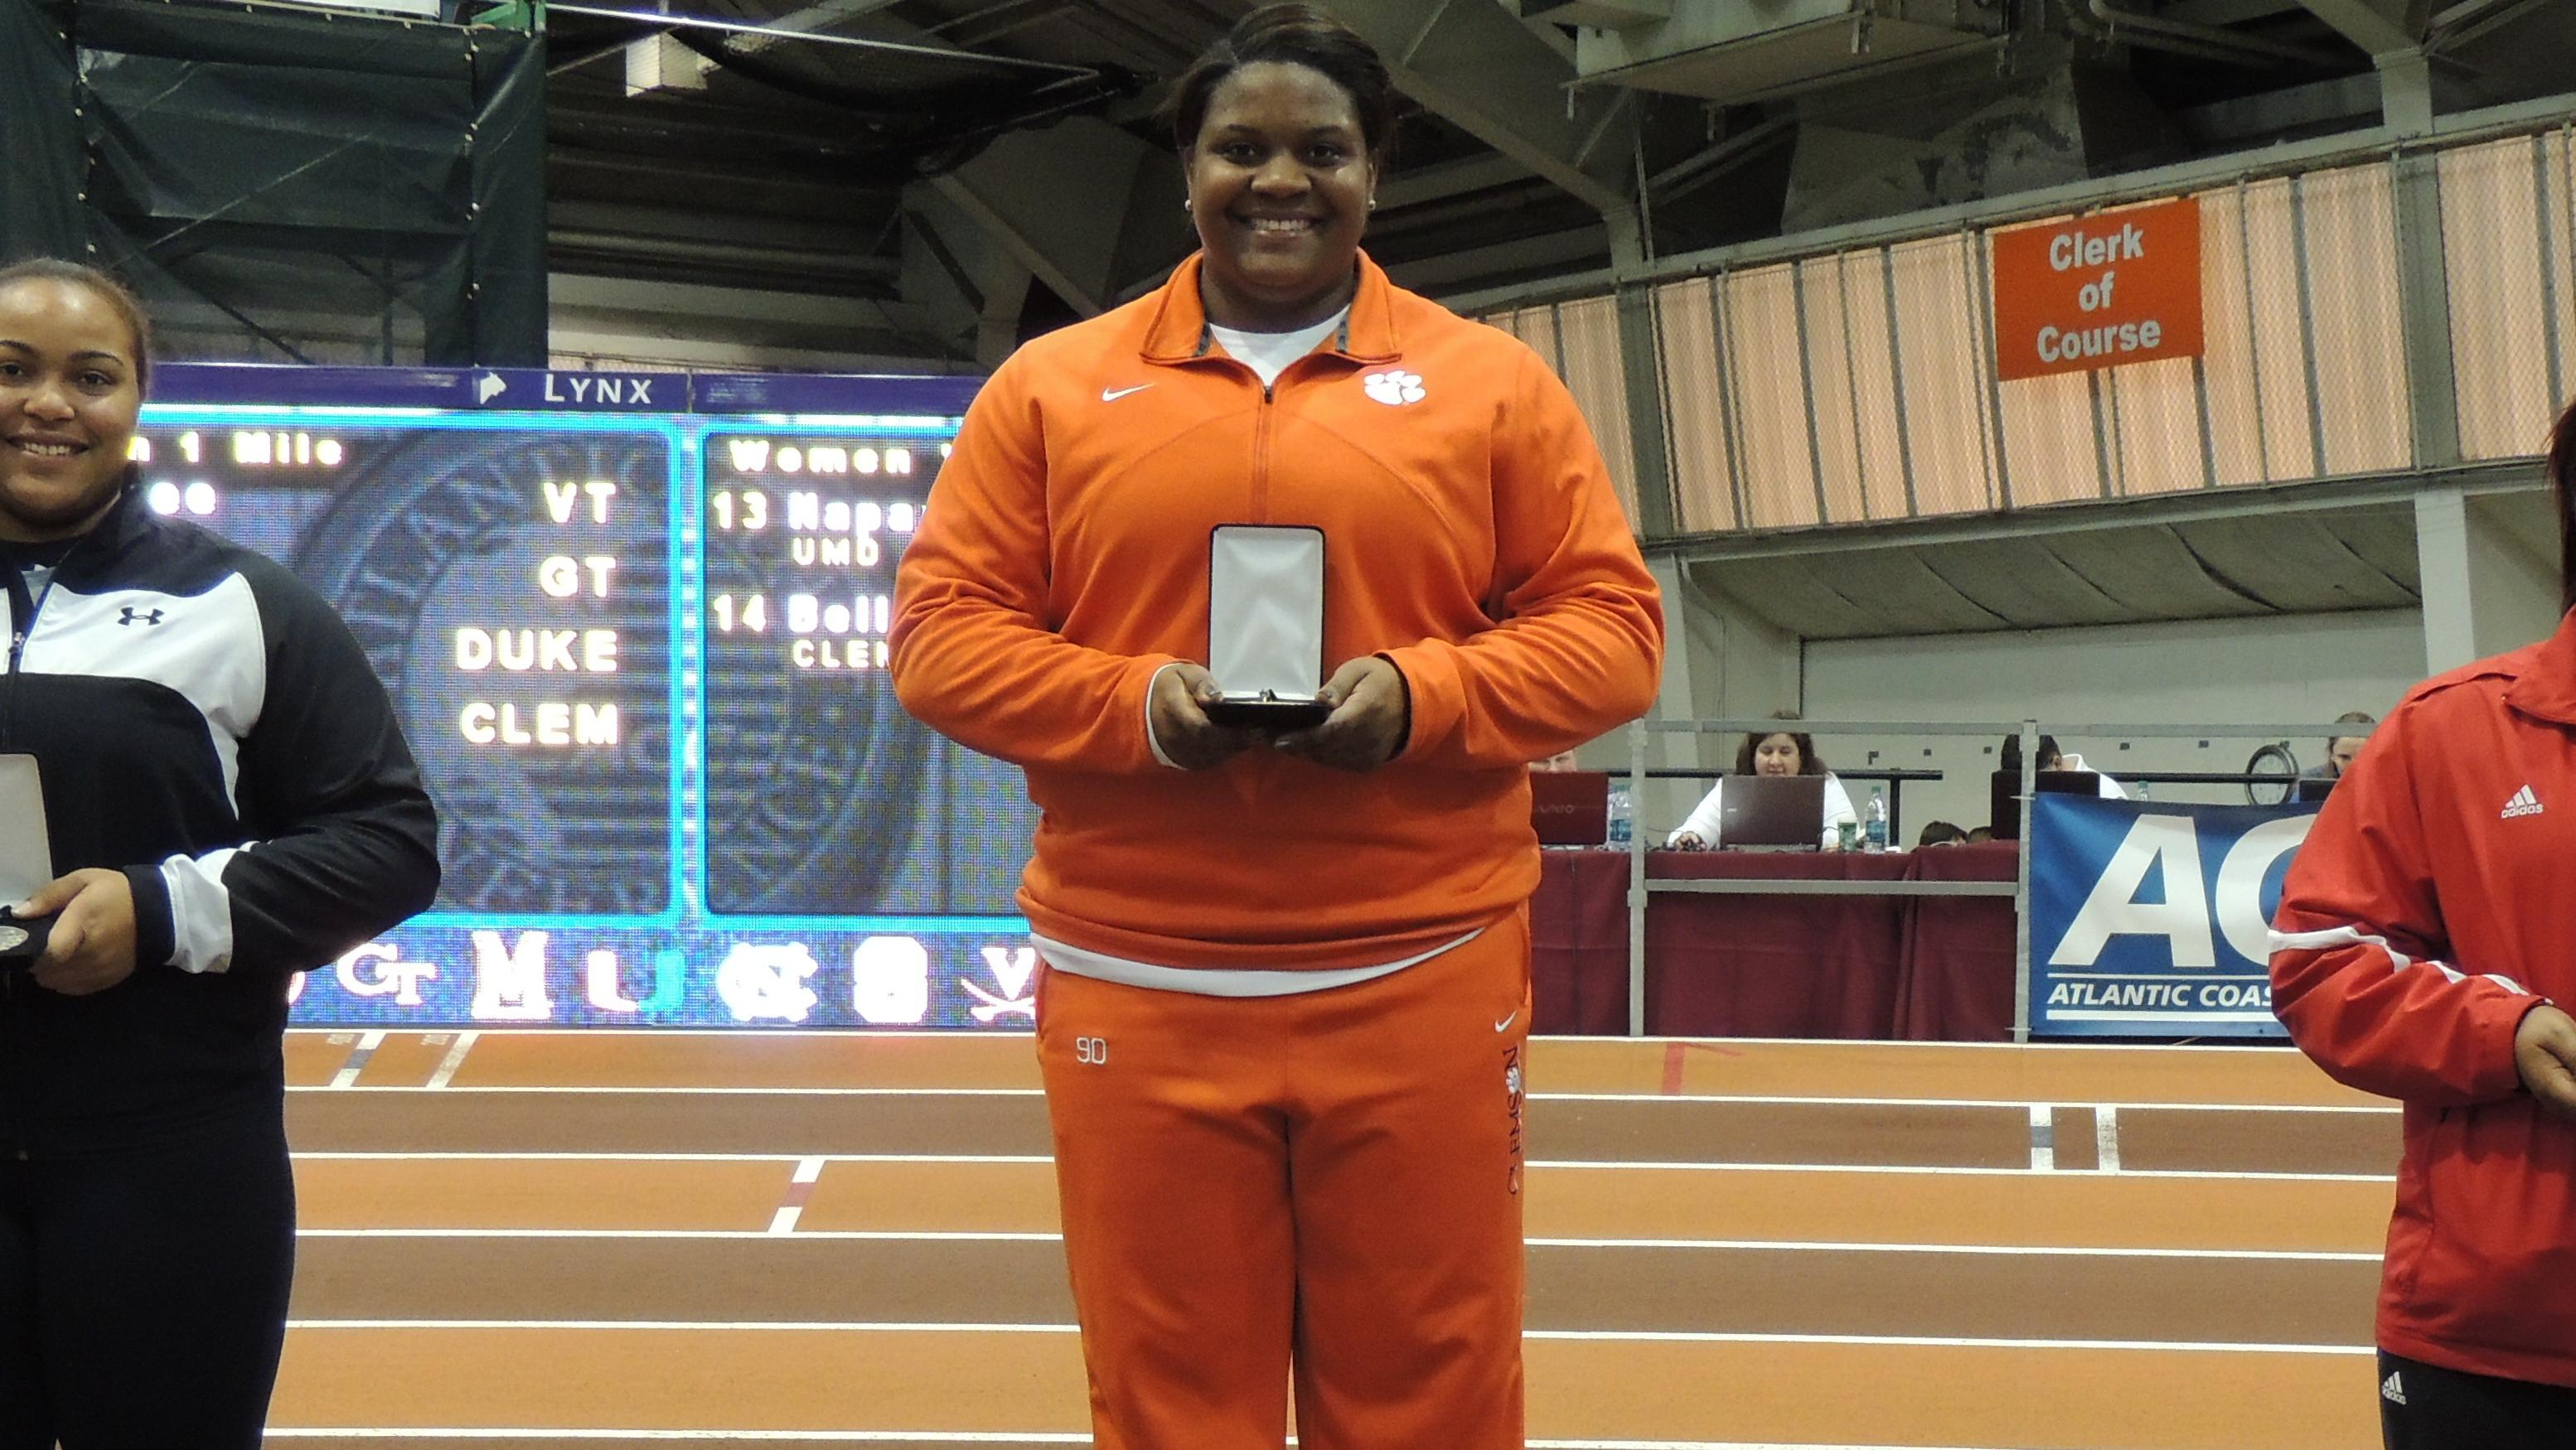 Clemson Women Tied for 5th After Day One of NCAA Indoor Track & Field Championships